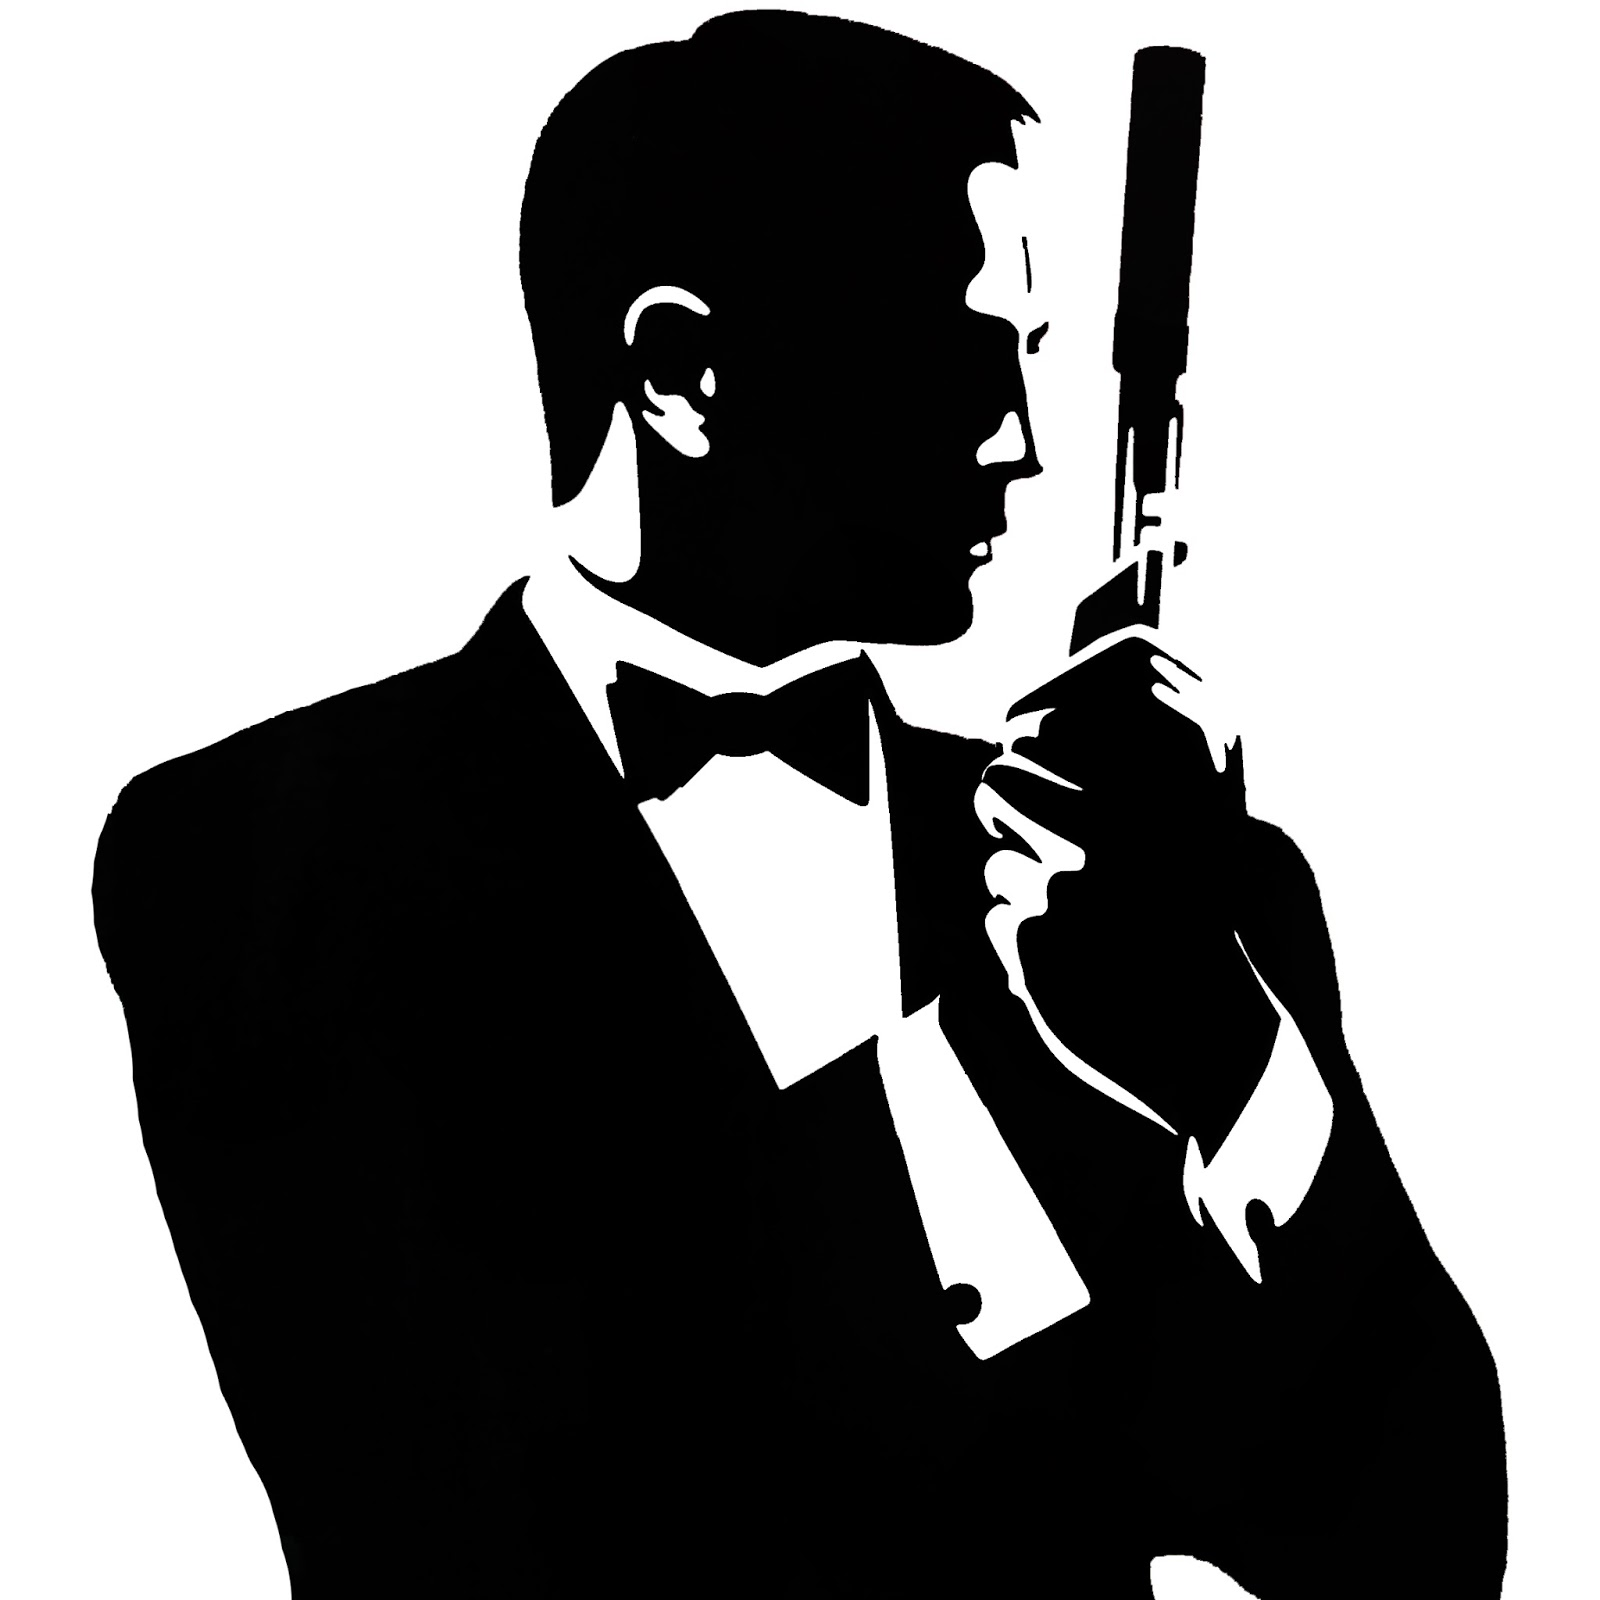 James Bond Silhouette - WallsKid